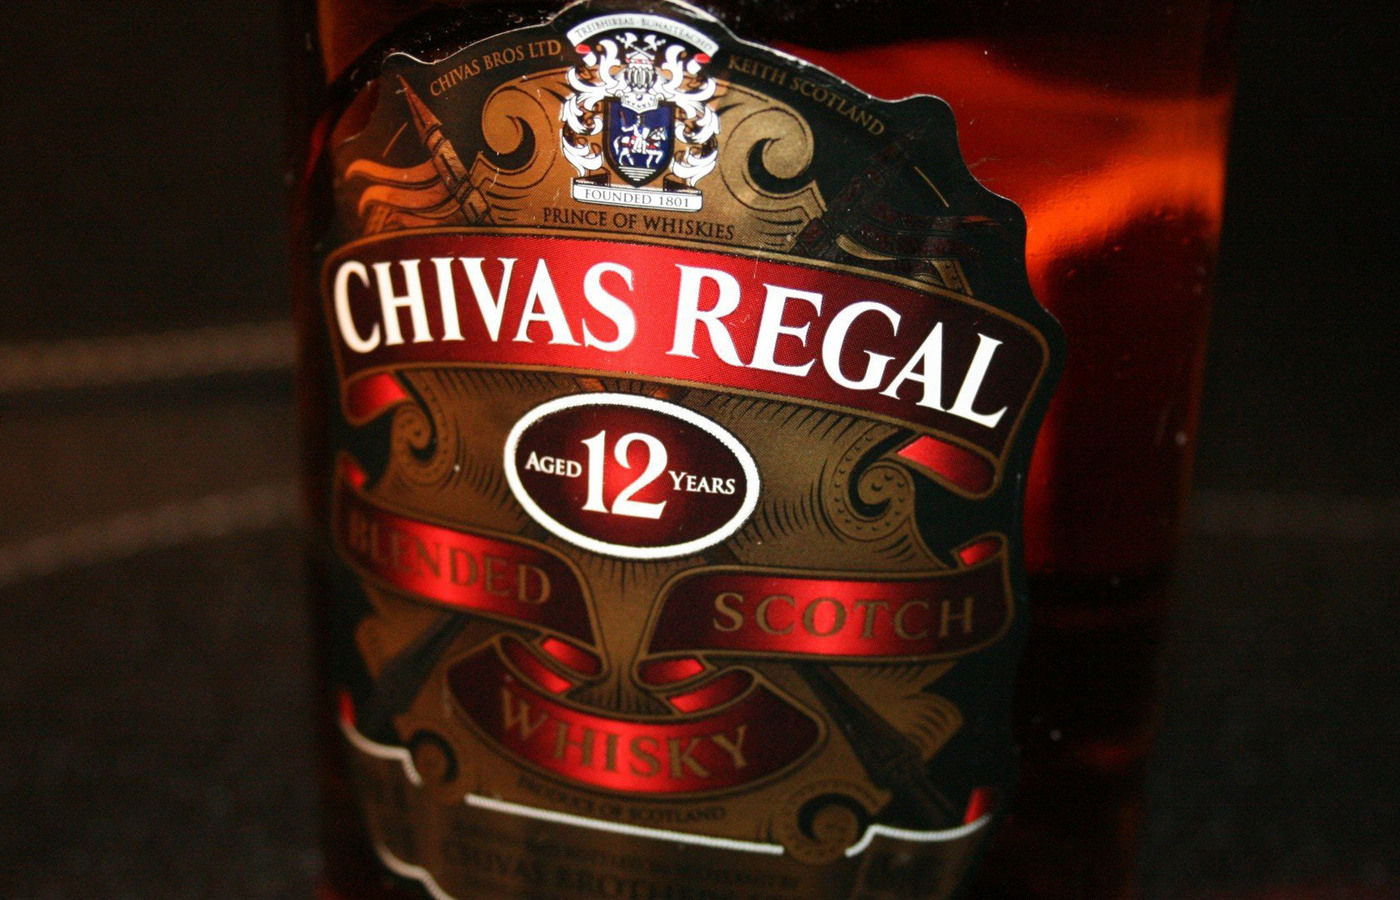 chivas-regal-qhd.jpg